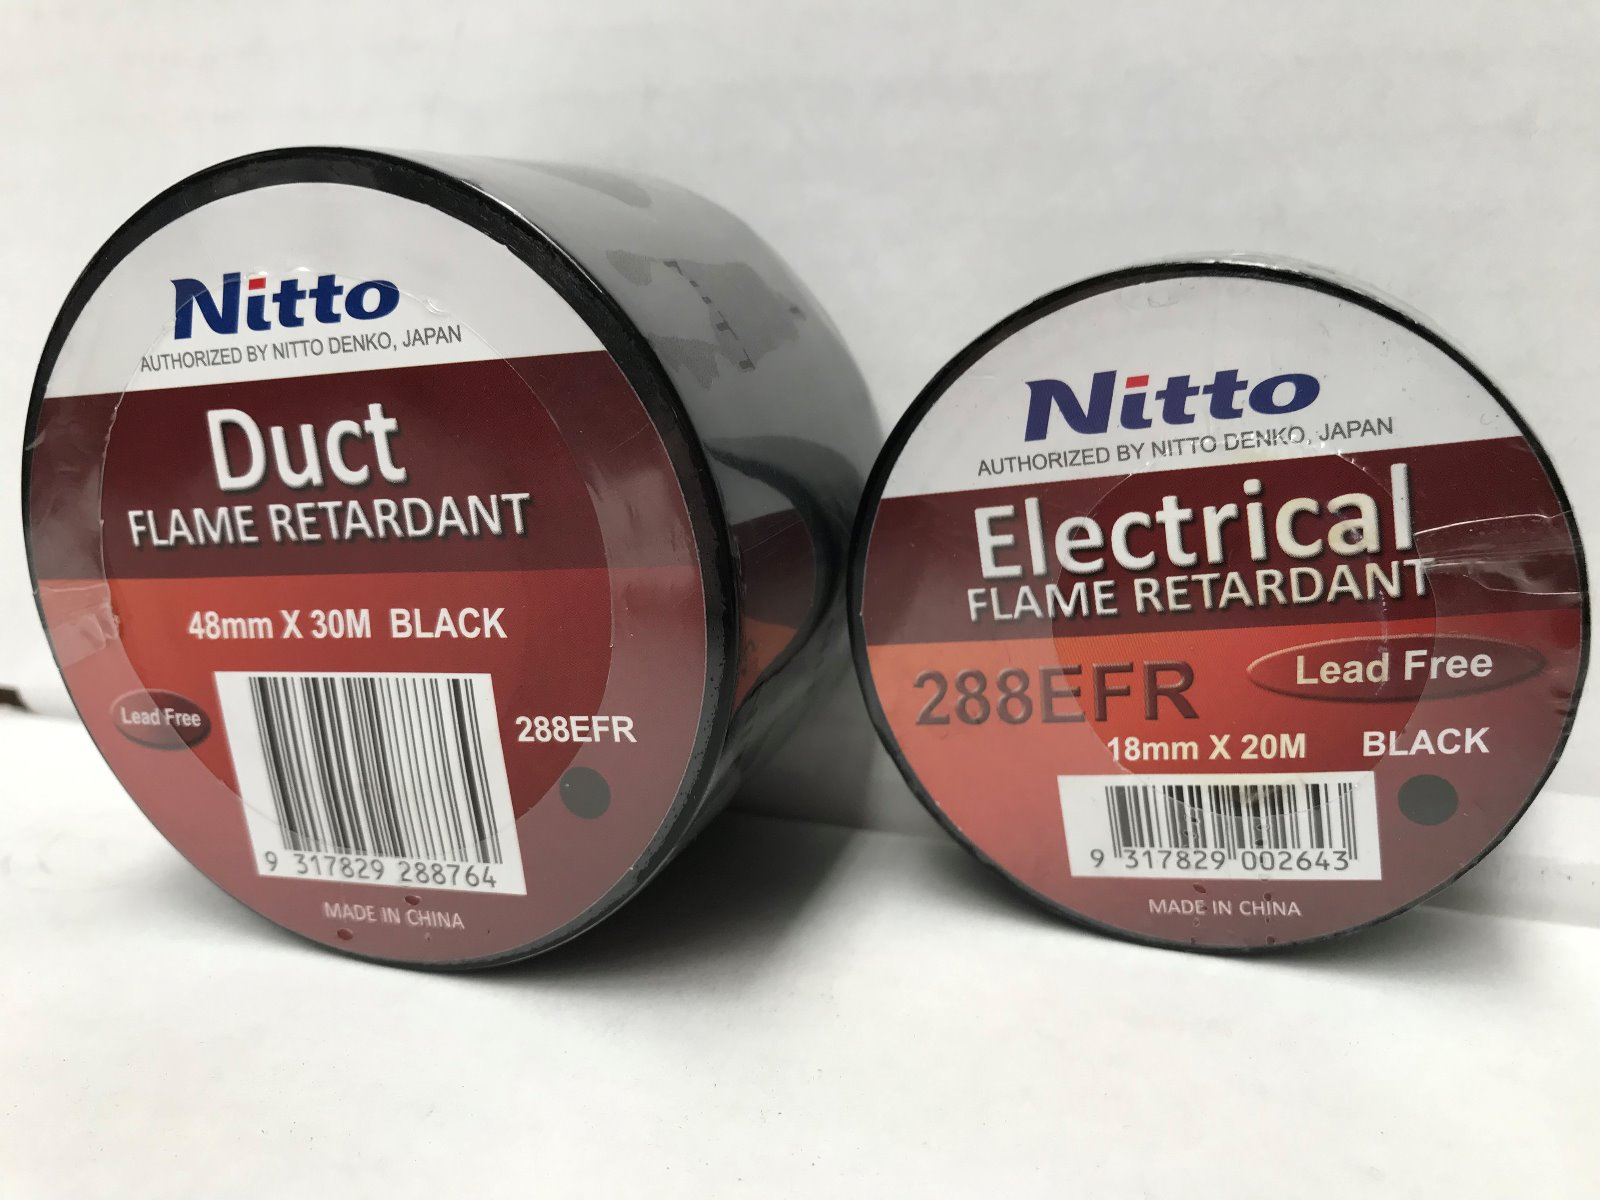 Nitto 288EFR Flame Retardant Electrical Tape & Duct Tape